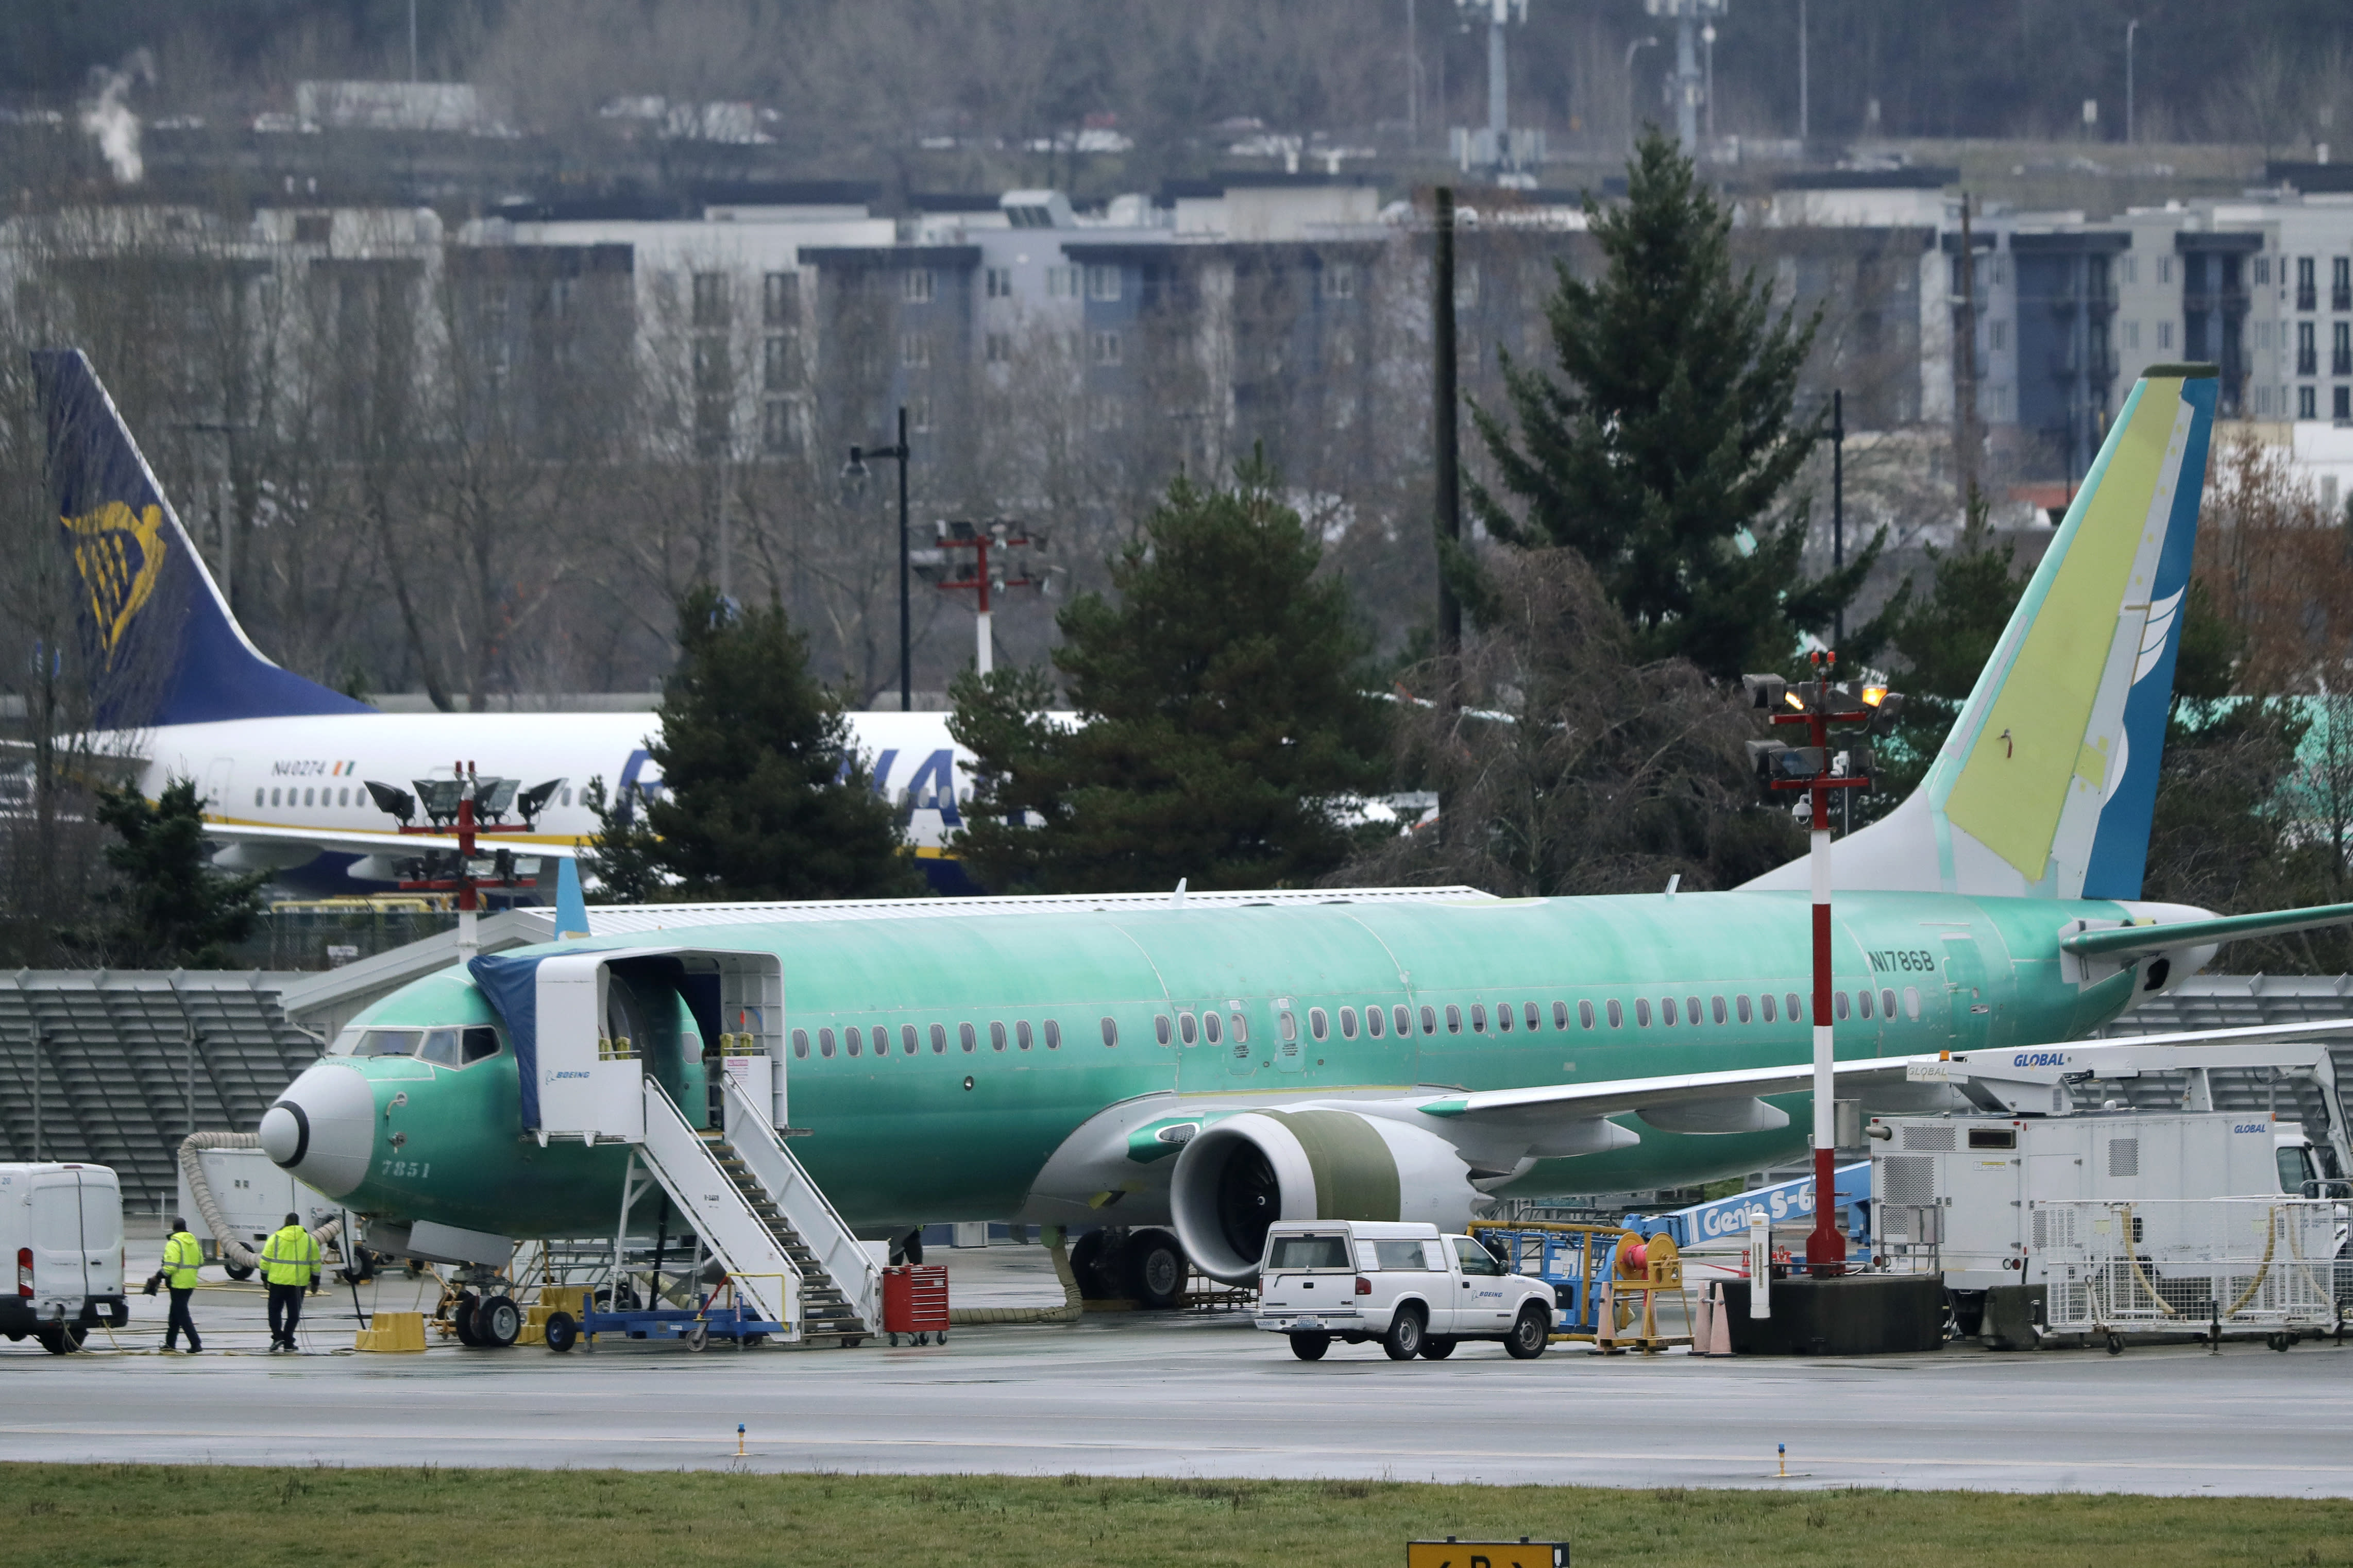 Boeing expected to post another quarterly loss as coronavirus, 737 MAX woes weigh